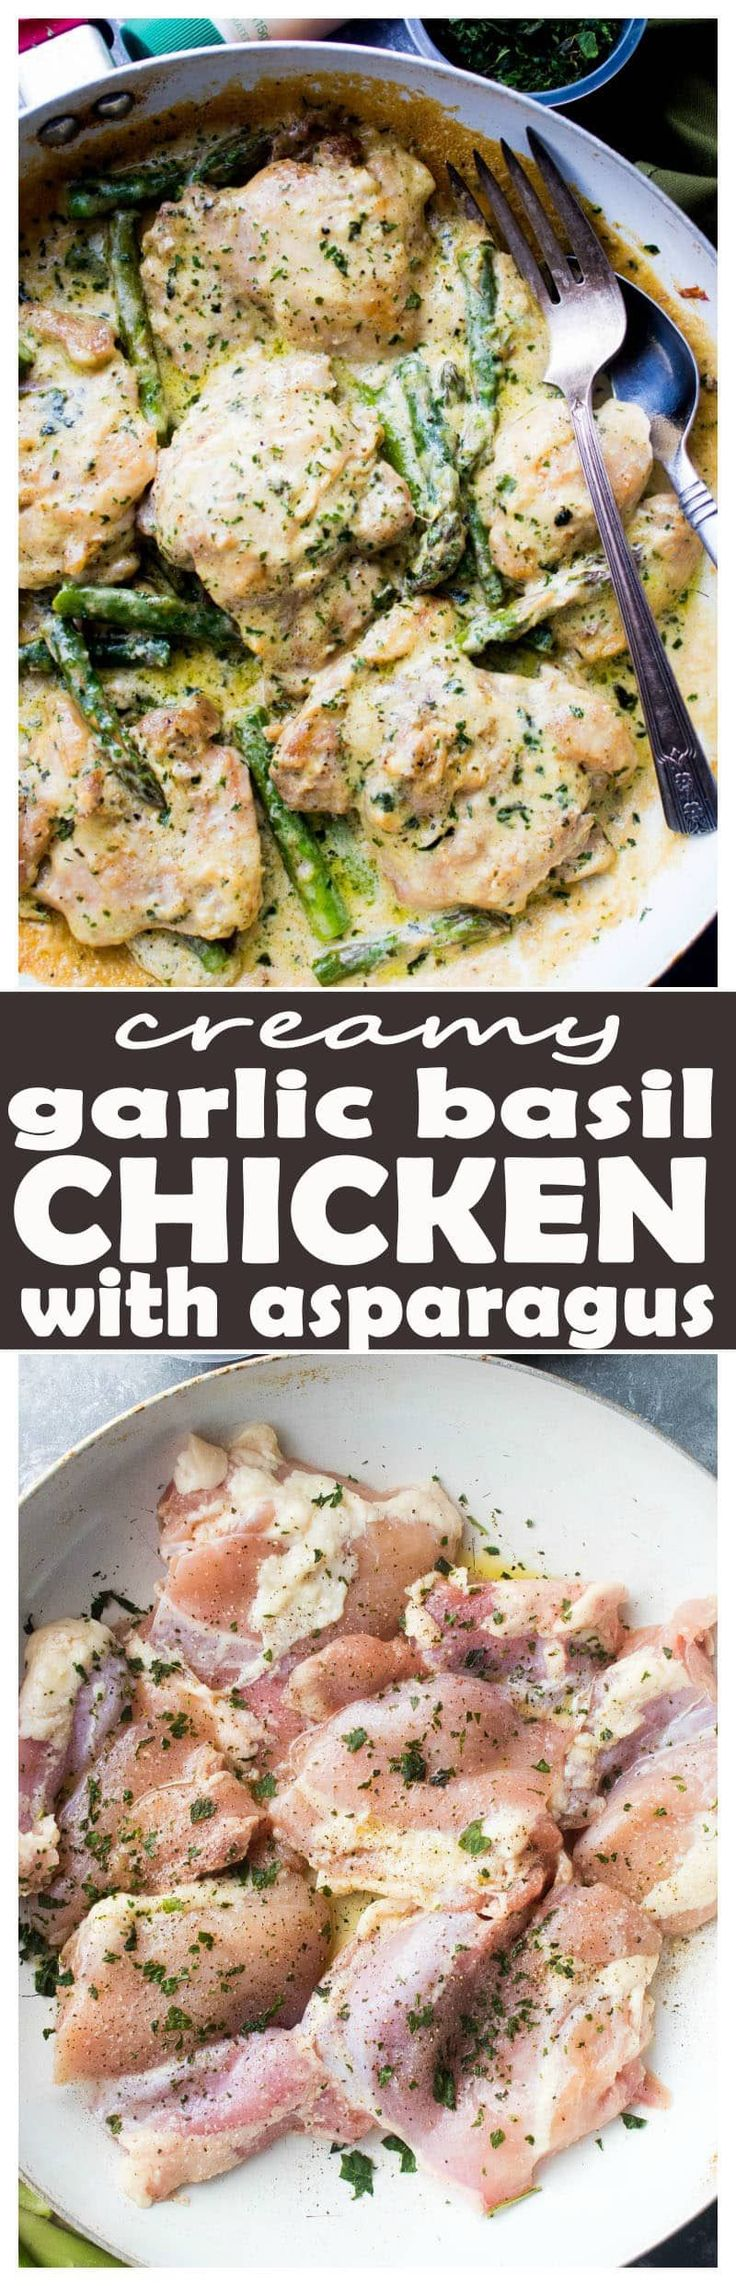 Thank you Gourmet Garden and Kroger for sponsoring this post! All opinions are 100% my own.Creamy Garlic Basil Chicken with Asparagus - This delicious and creamless Creamy Garlic Basil Chicken is prepared in a skillet with a flavorful garlicky basil sauce and asparagus spears.Creamy Garlic Basil Chicken, we have been waiting for you!Hey ya, friends! How's this for creamless creamy chicken? RIGHT? It's creamy, but without the cream! I mean, genius or what? Evaporated milk is my forever...